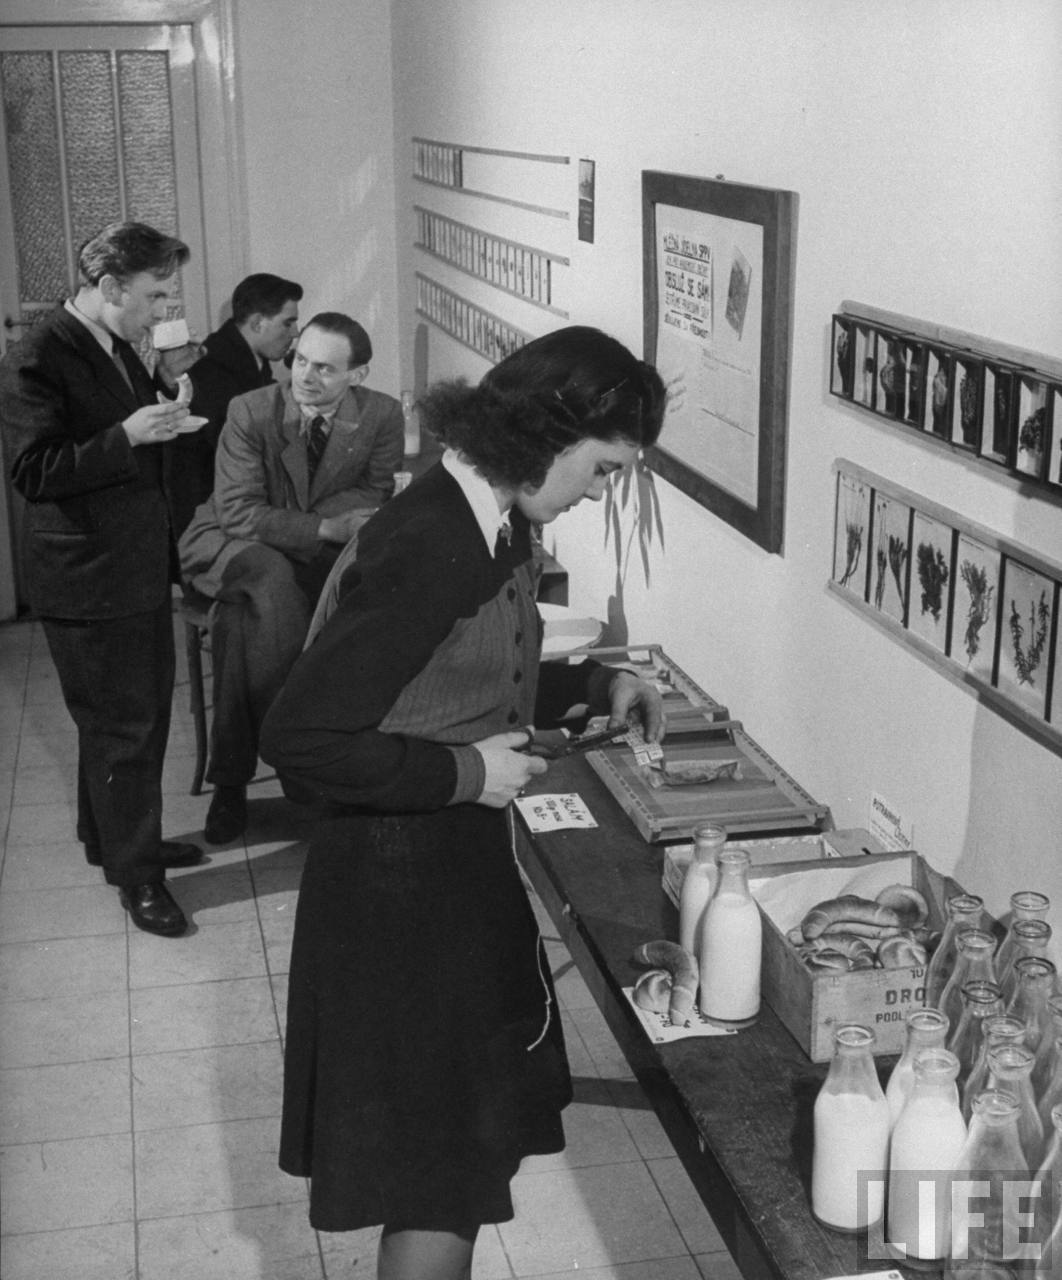 Charles University student clipping ration ticket for two bottles of milk and two rolls at cooperative milk bar run by the Science students.